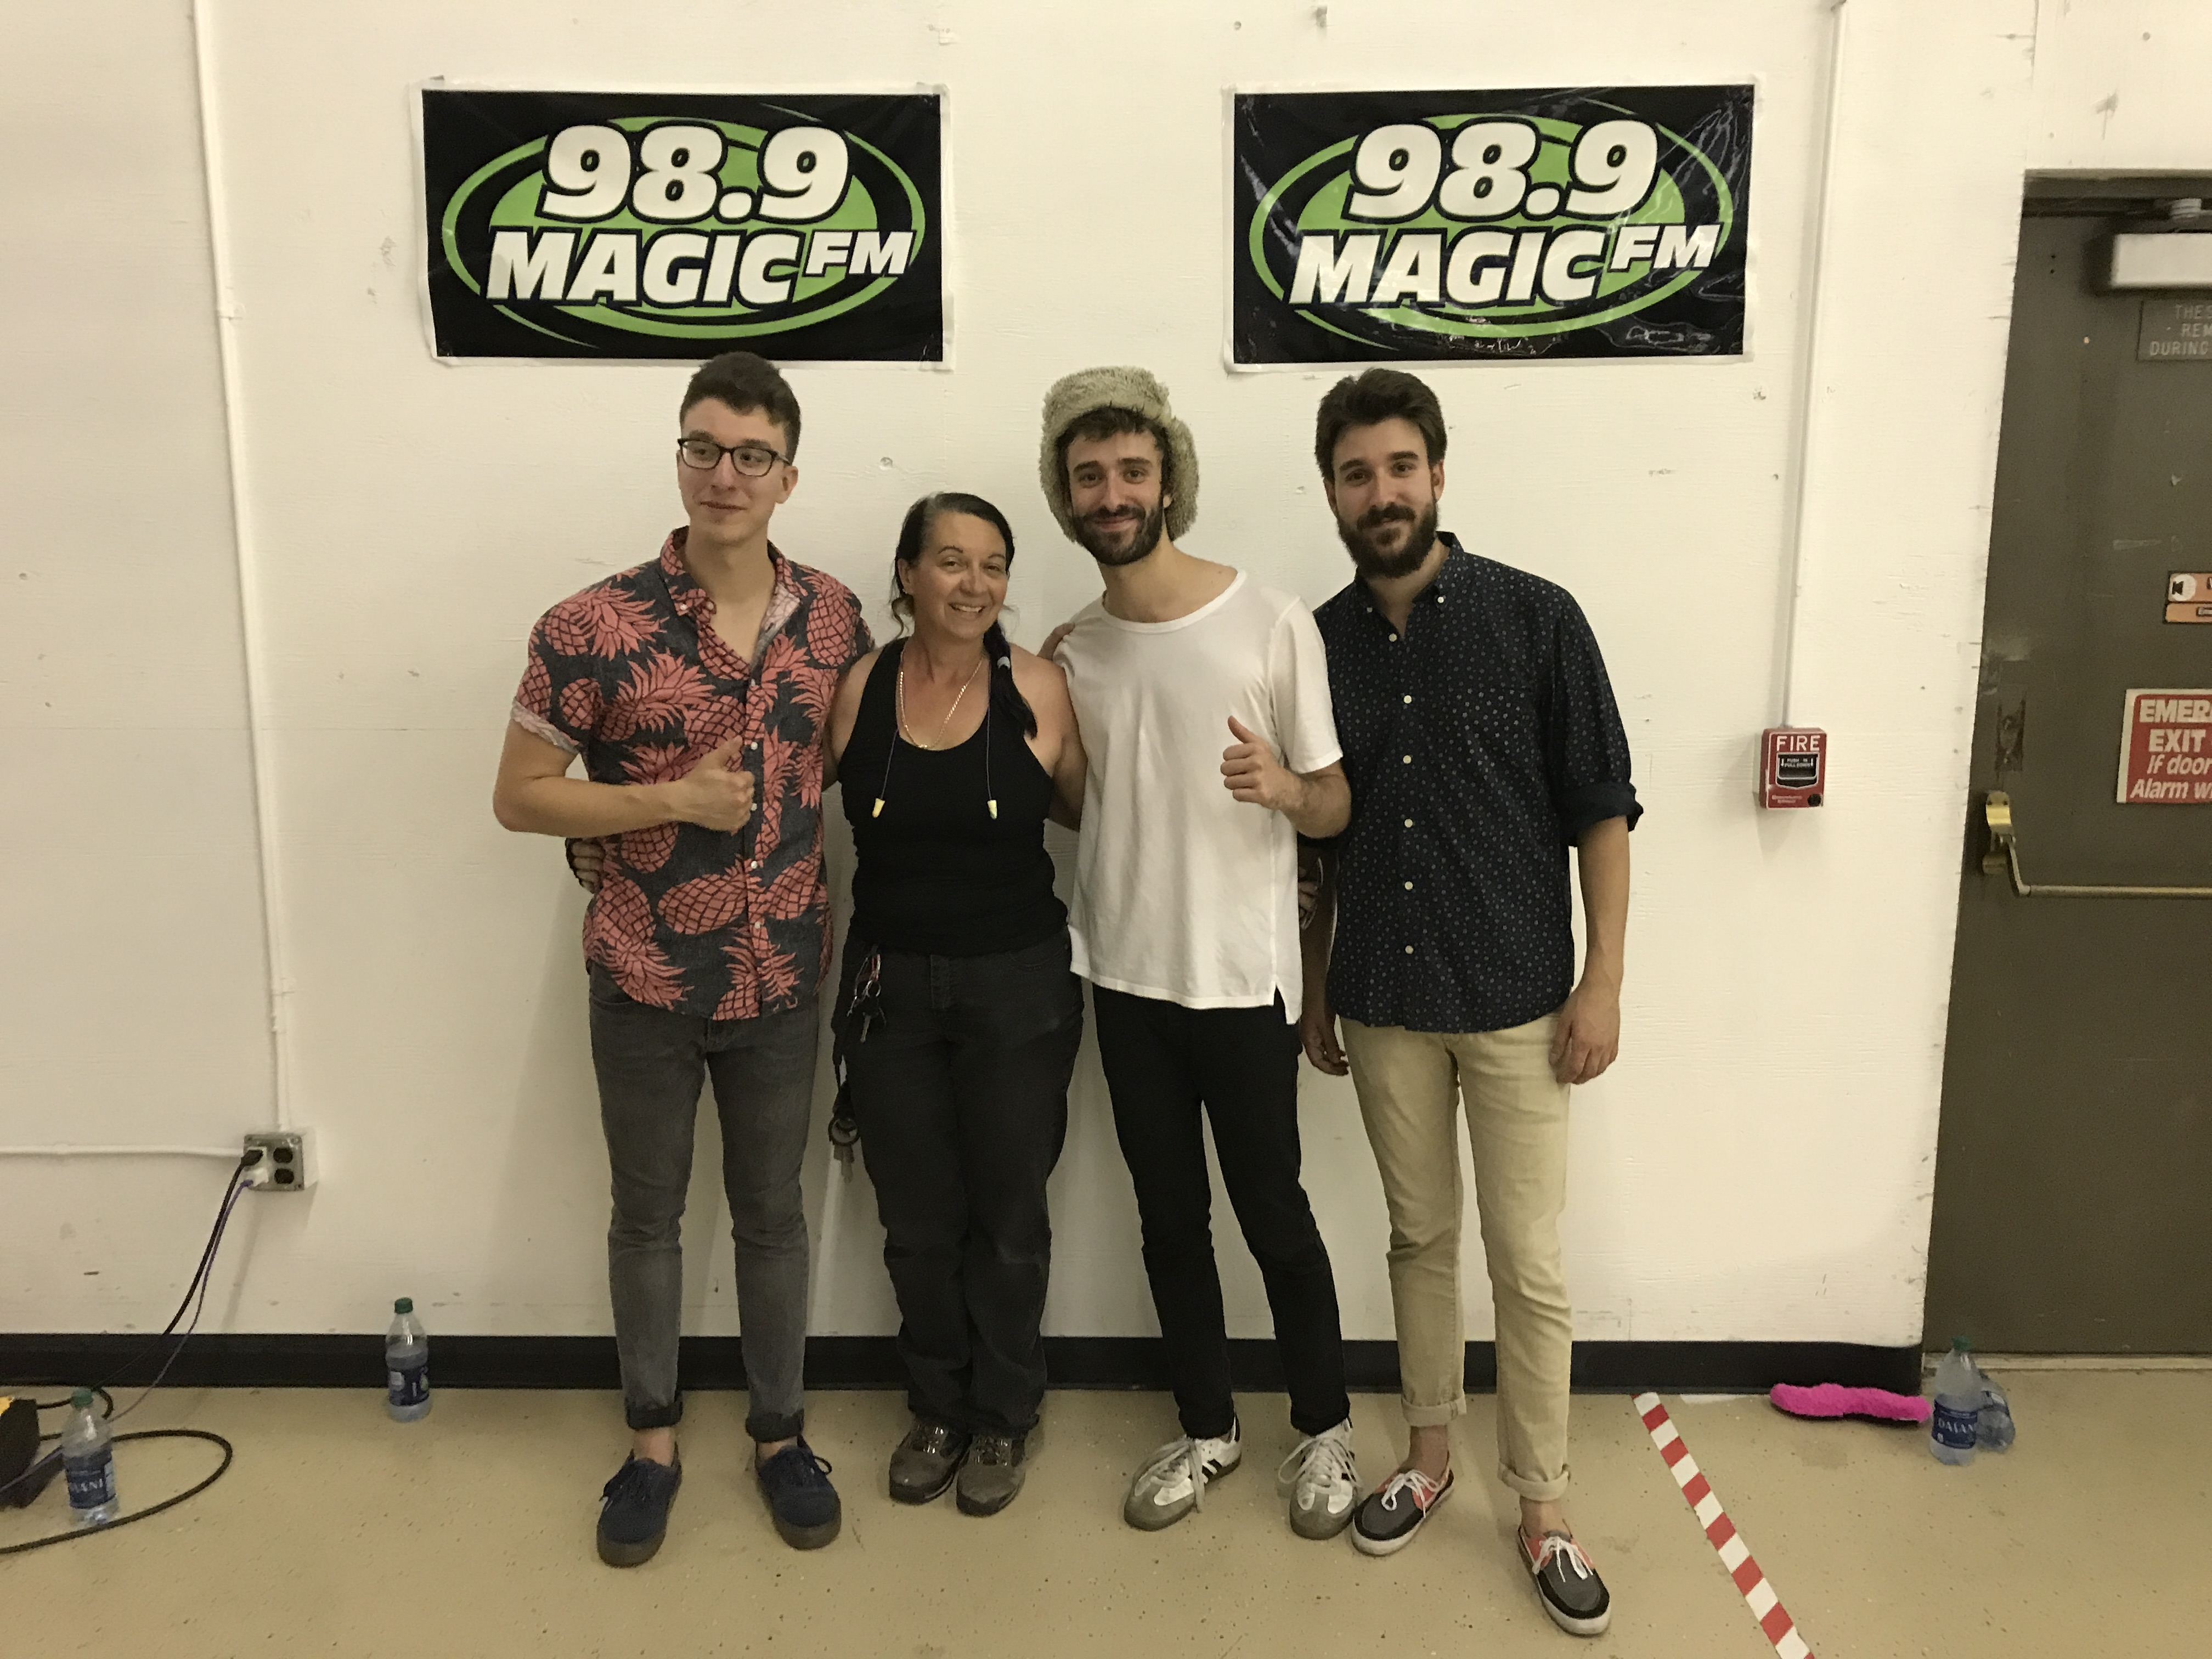 Ajr meet and greet pictures kkmg fm ajr meet and greet pictures kristyandbryce Choice Image